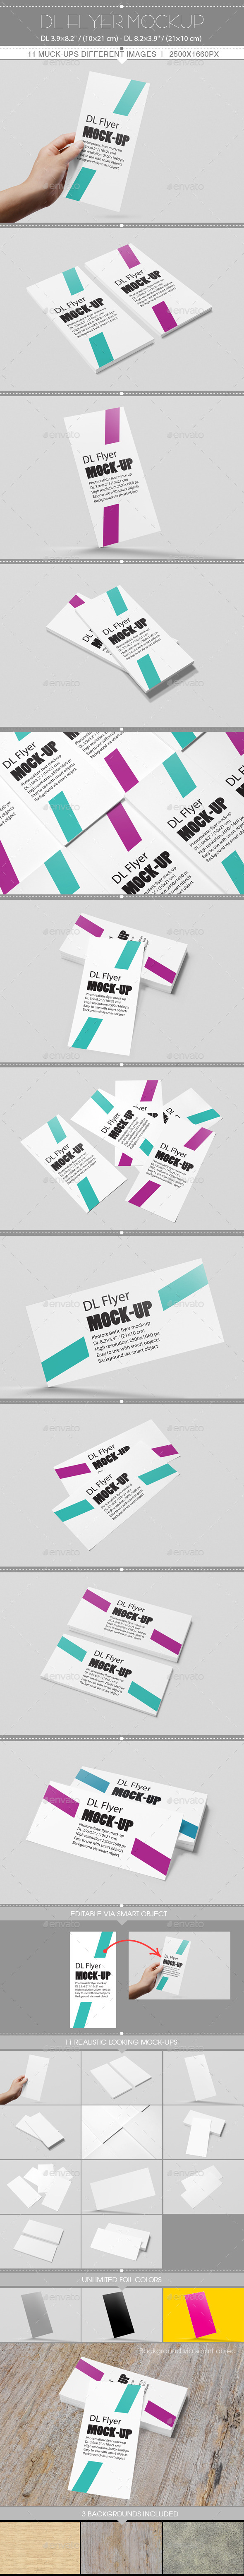 GraphicRiver DL Flyer Mockup 11409518